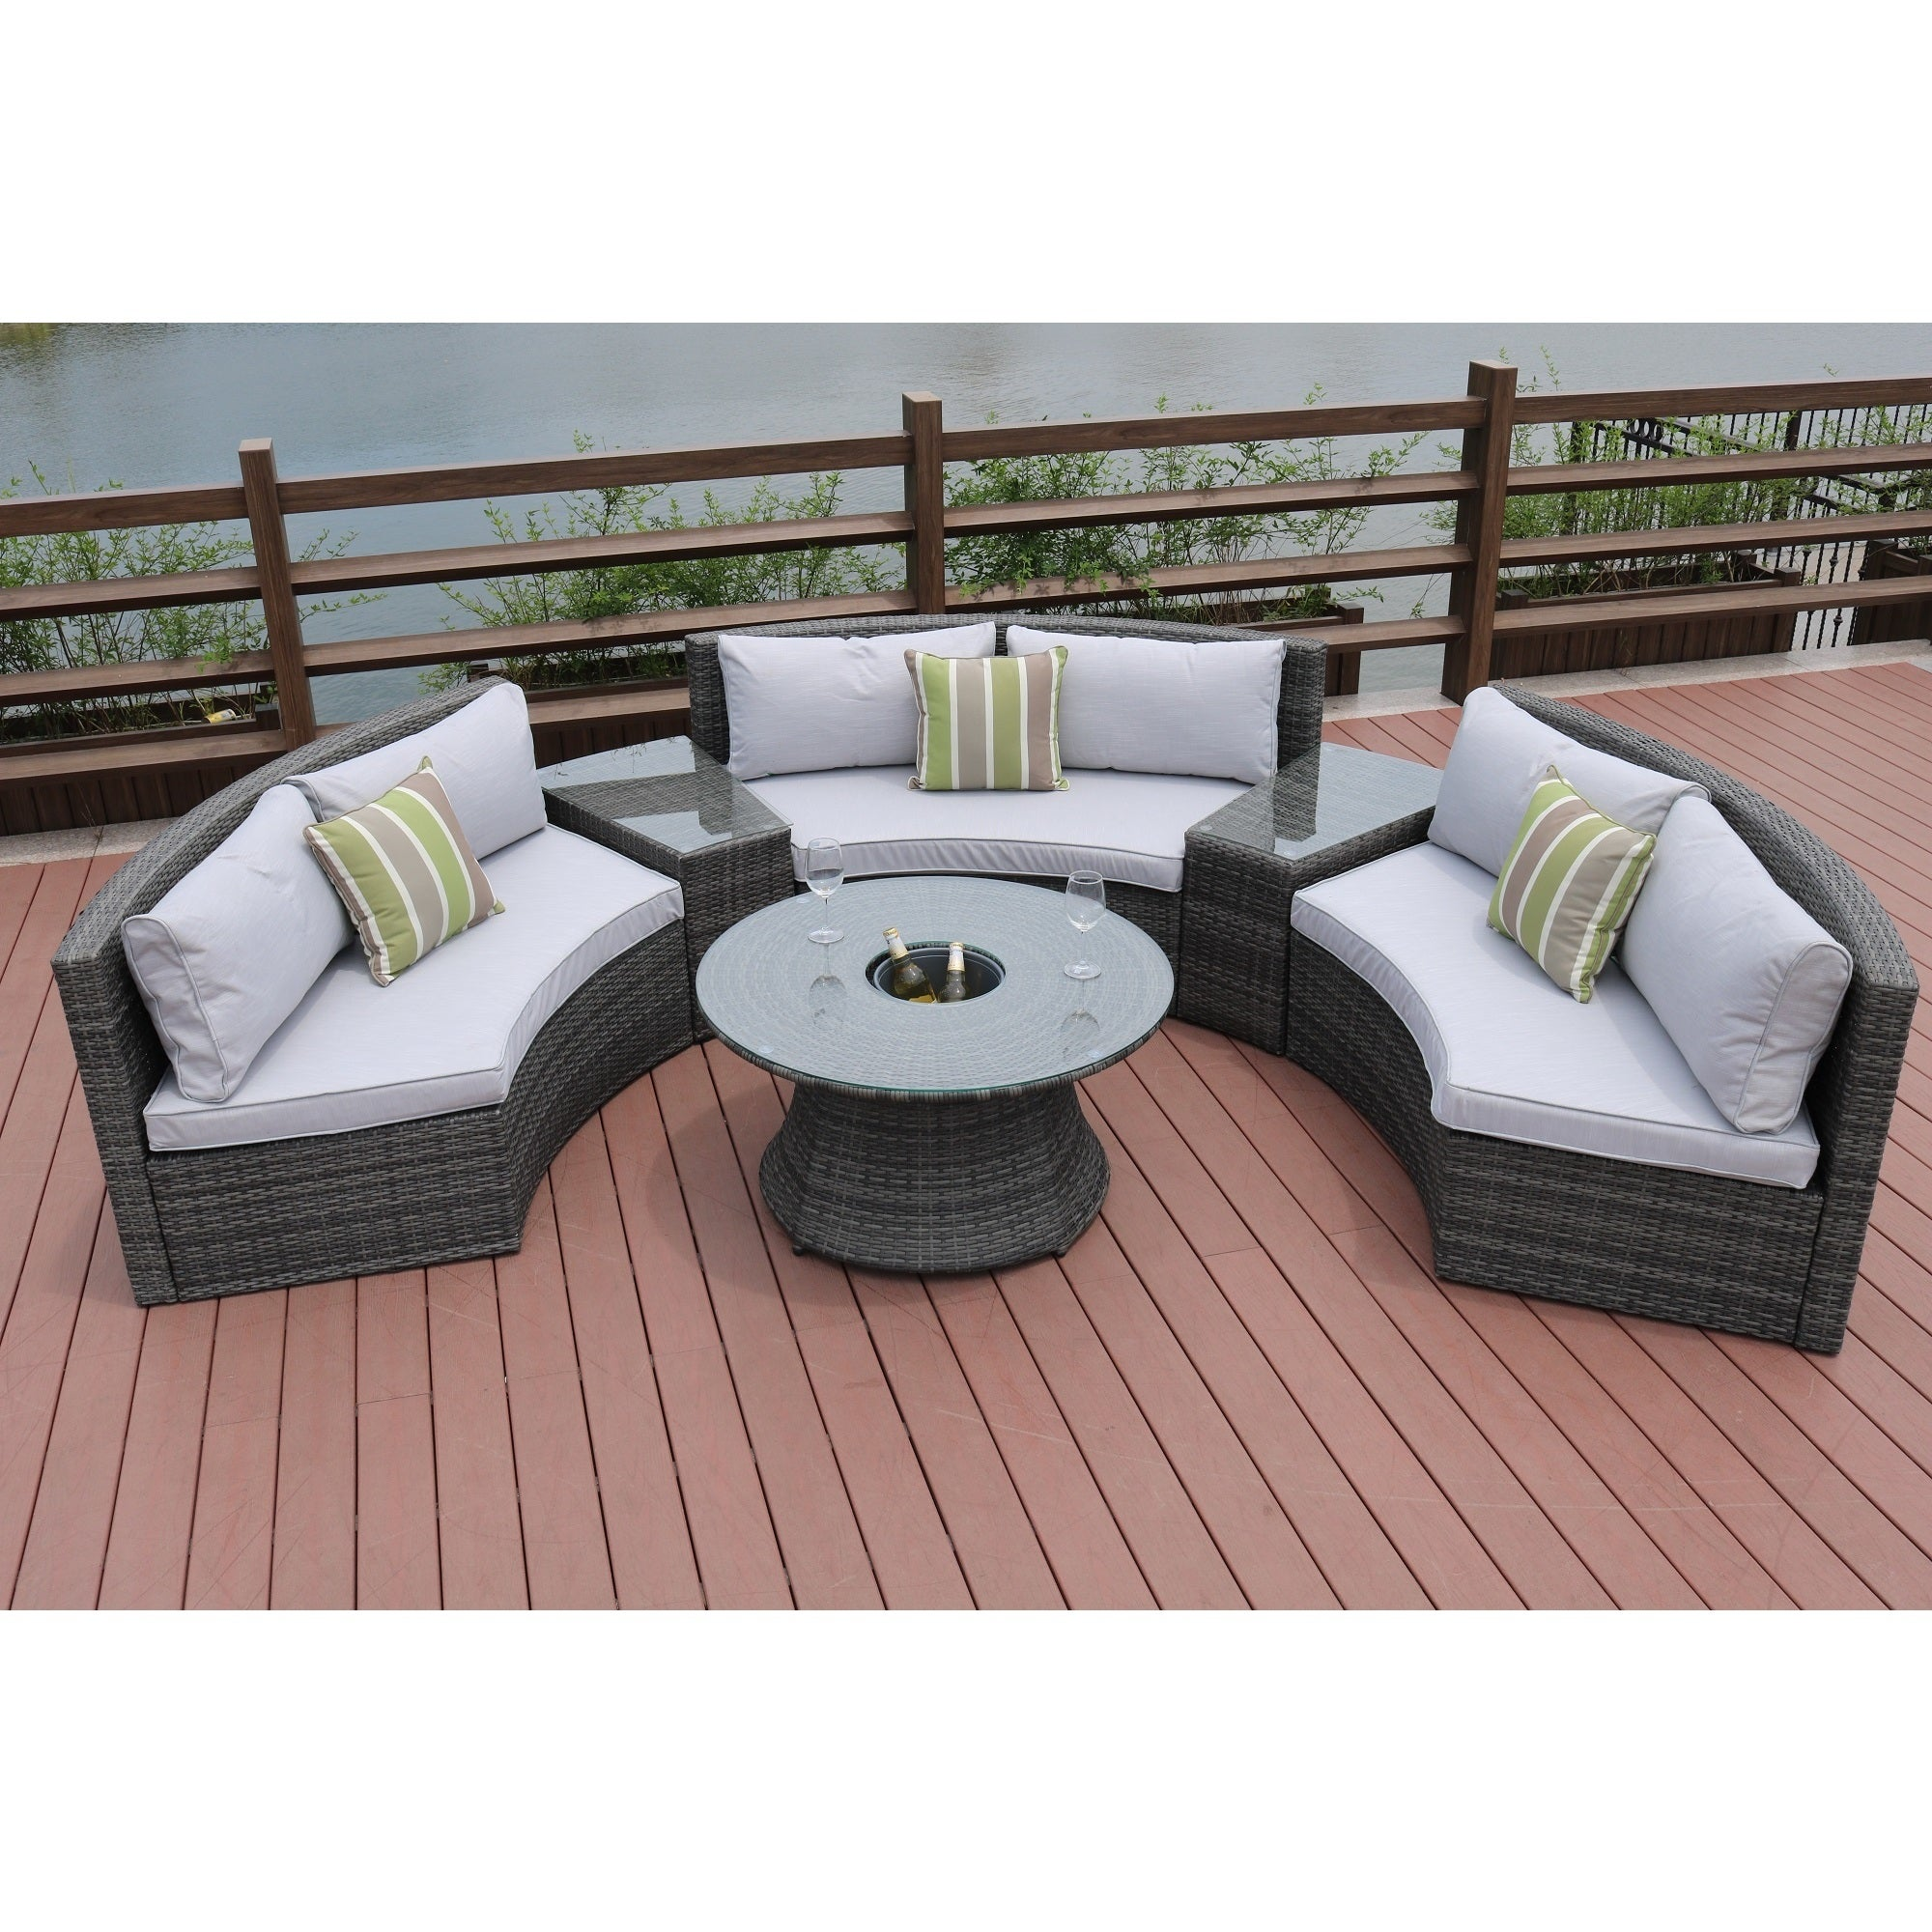 6 Piece Outdoor Curved Sectional Sofa